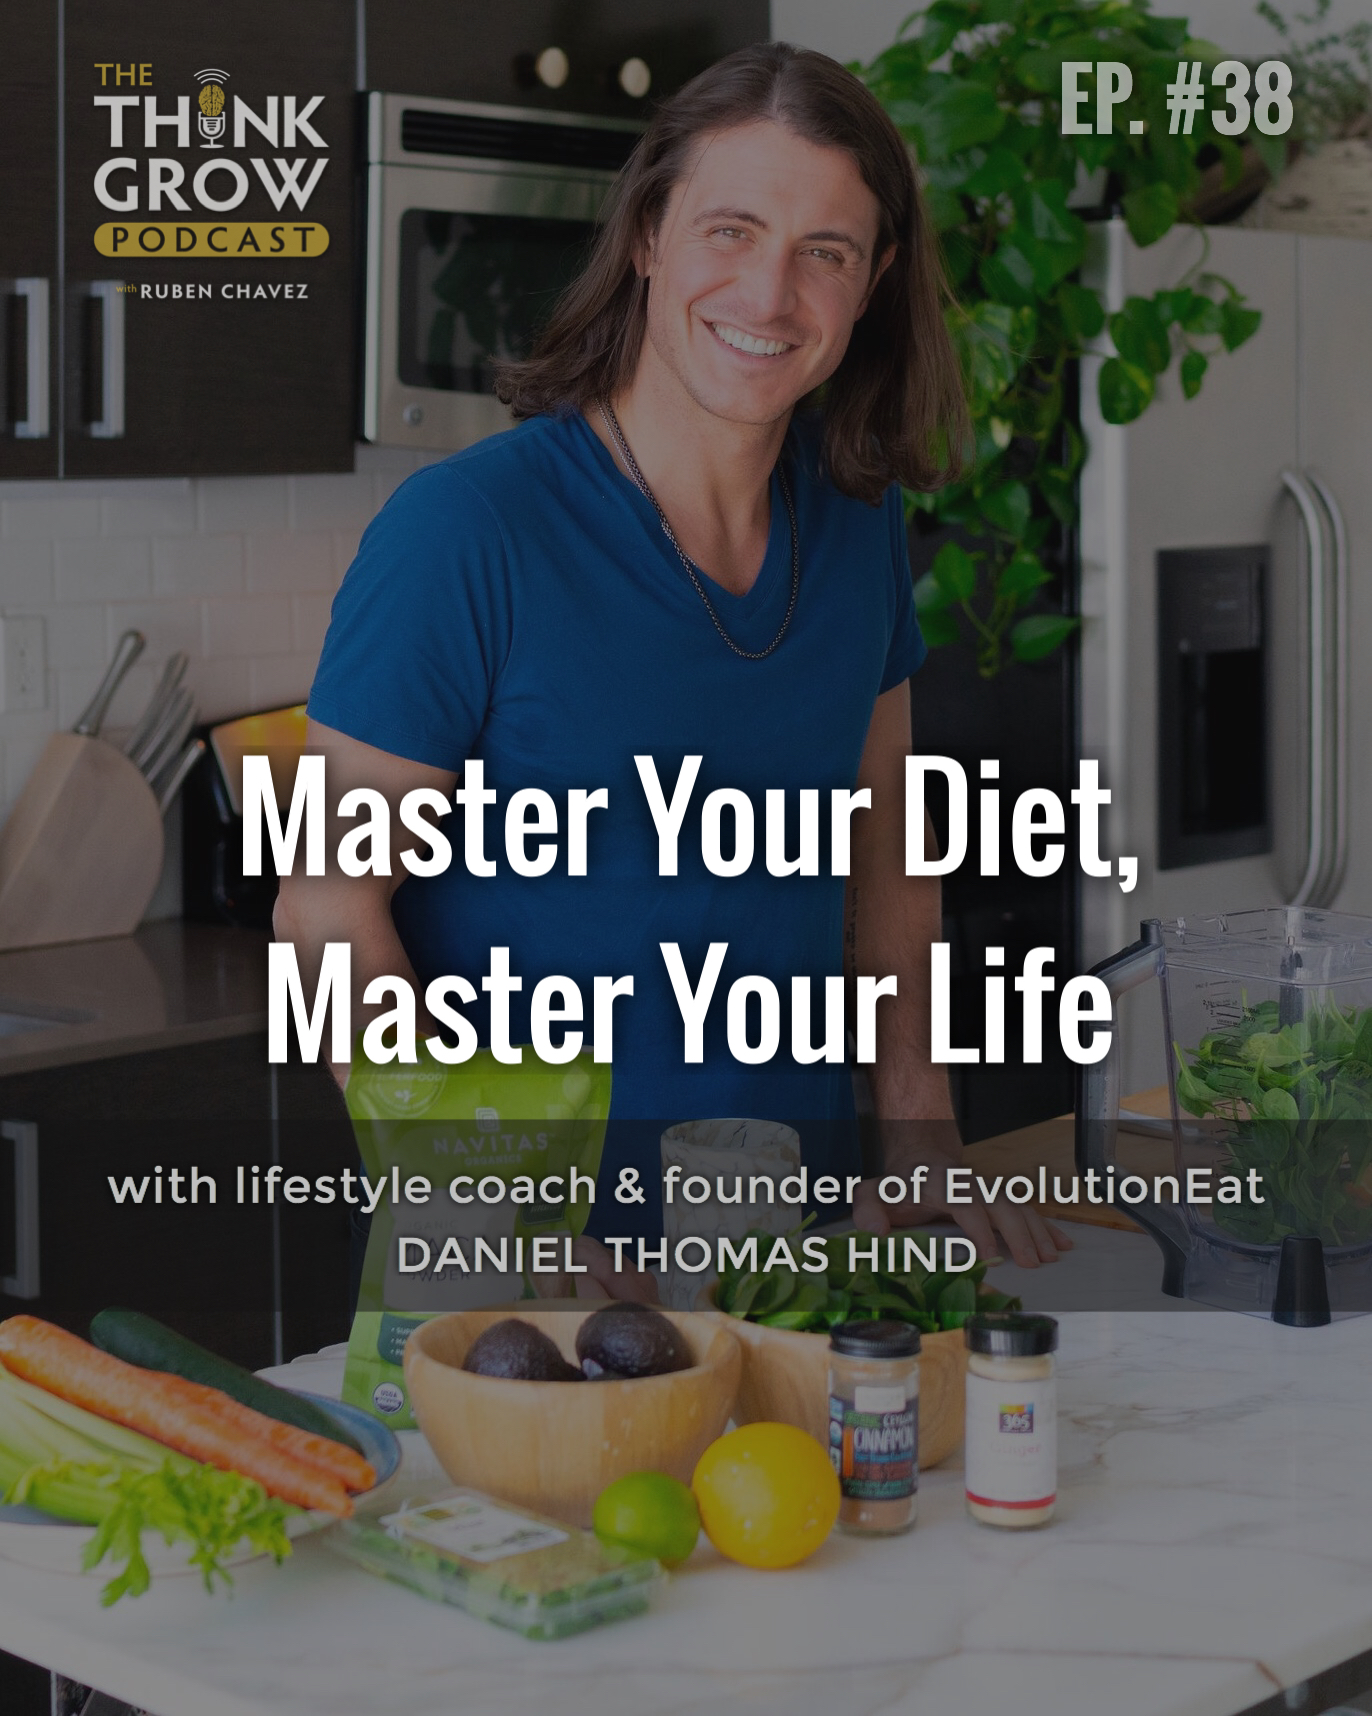 Episode 38 - Master Your Diet, Master Your Life